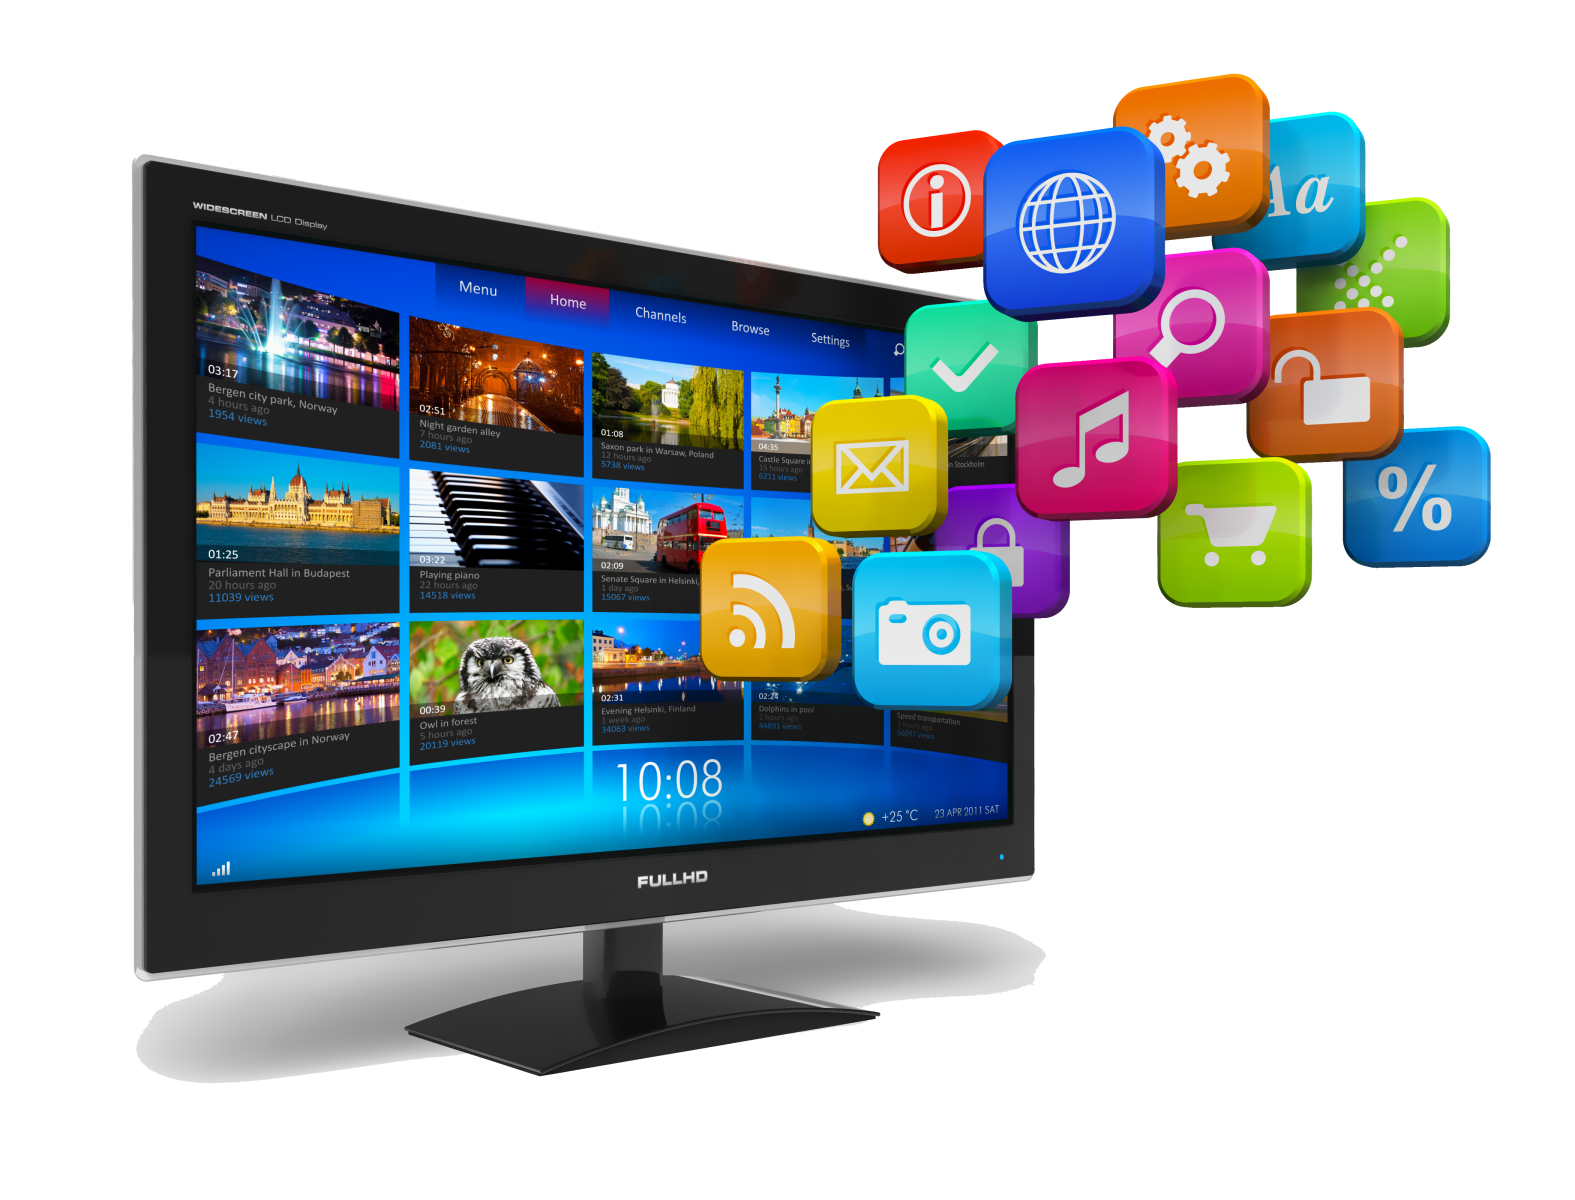 HOW TO INSTALL APPS IN YOUR SMART TV Social tv,